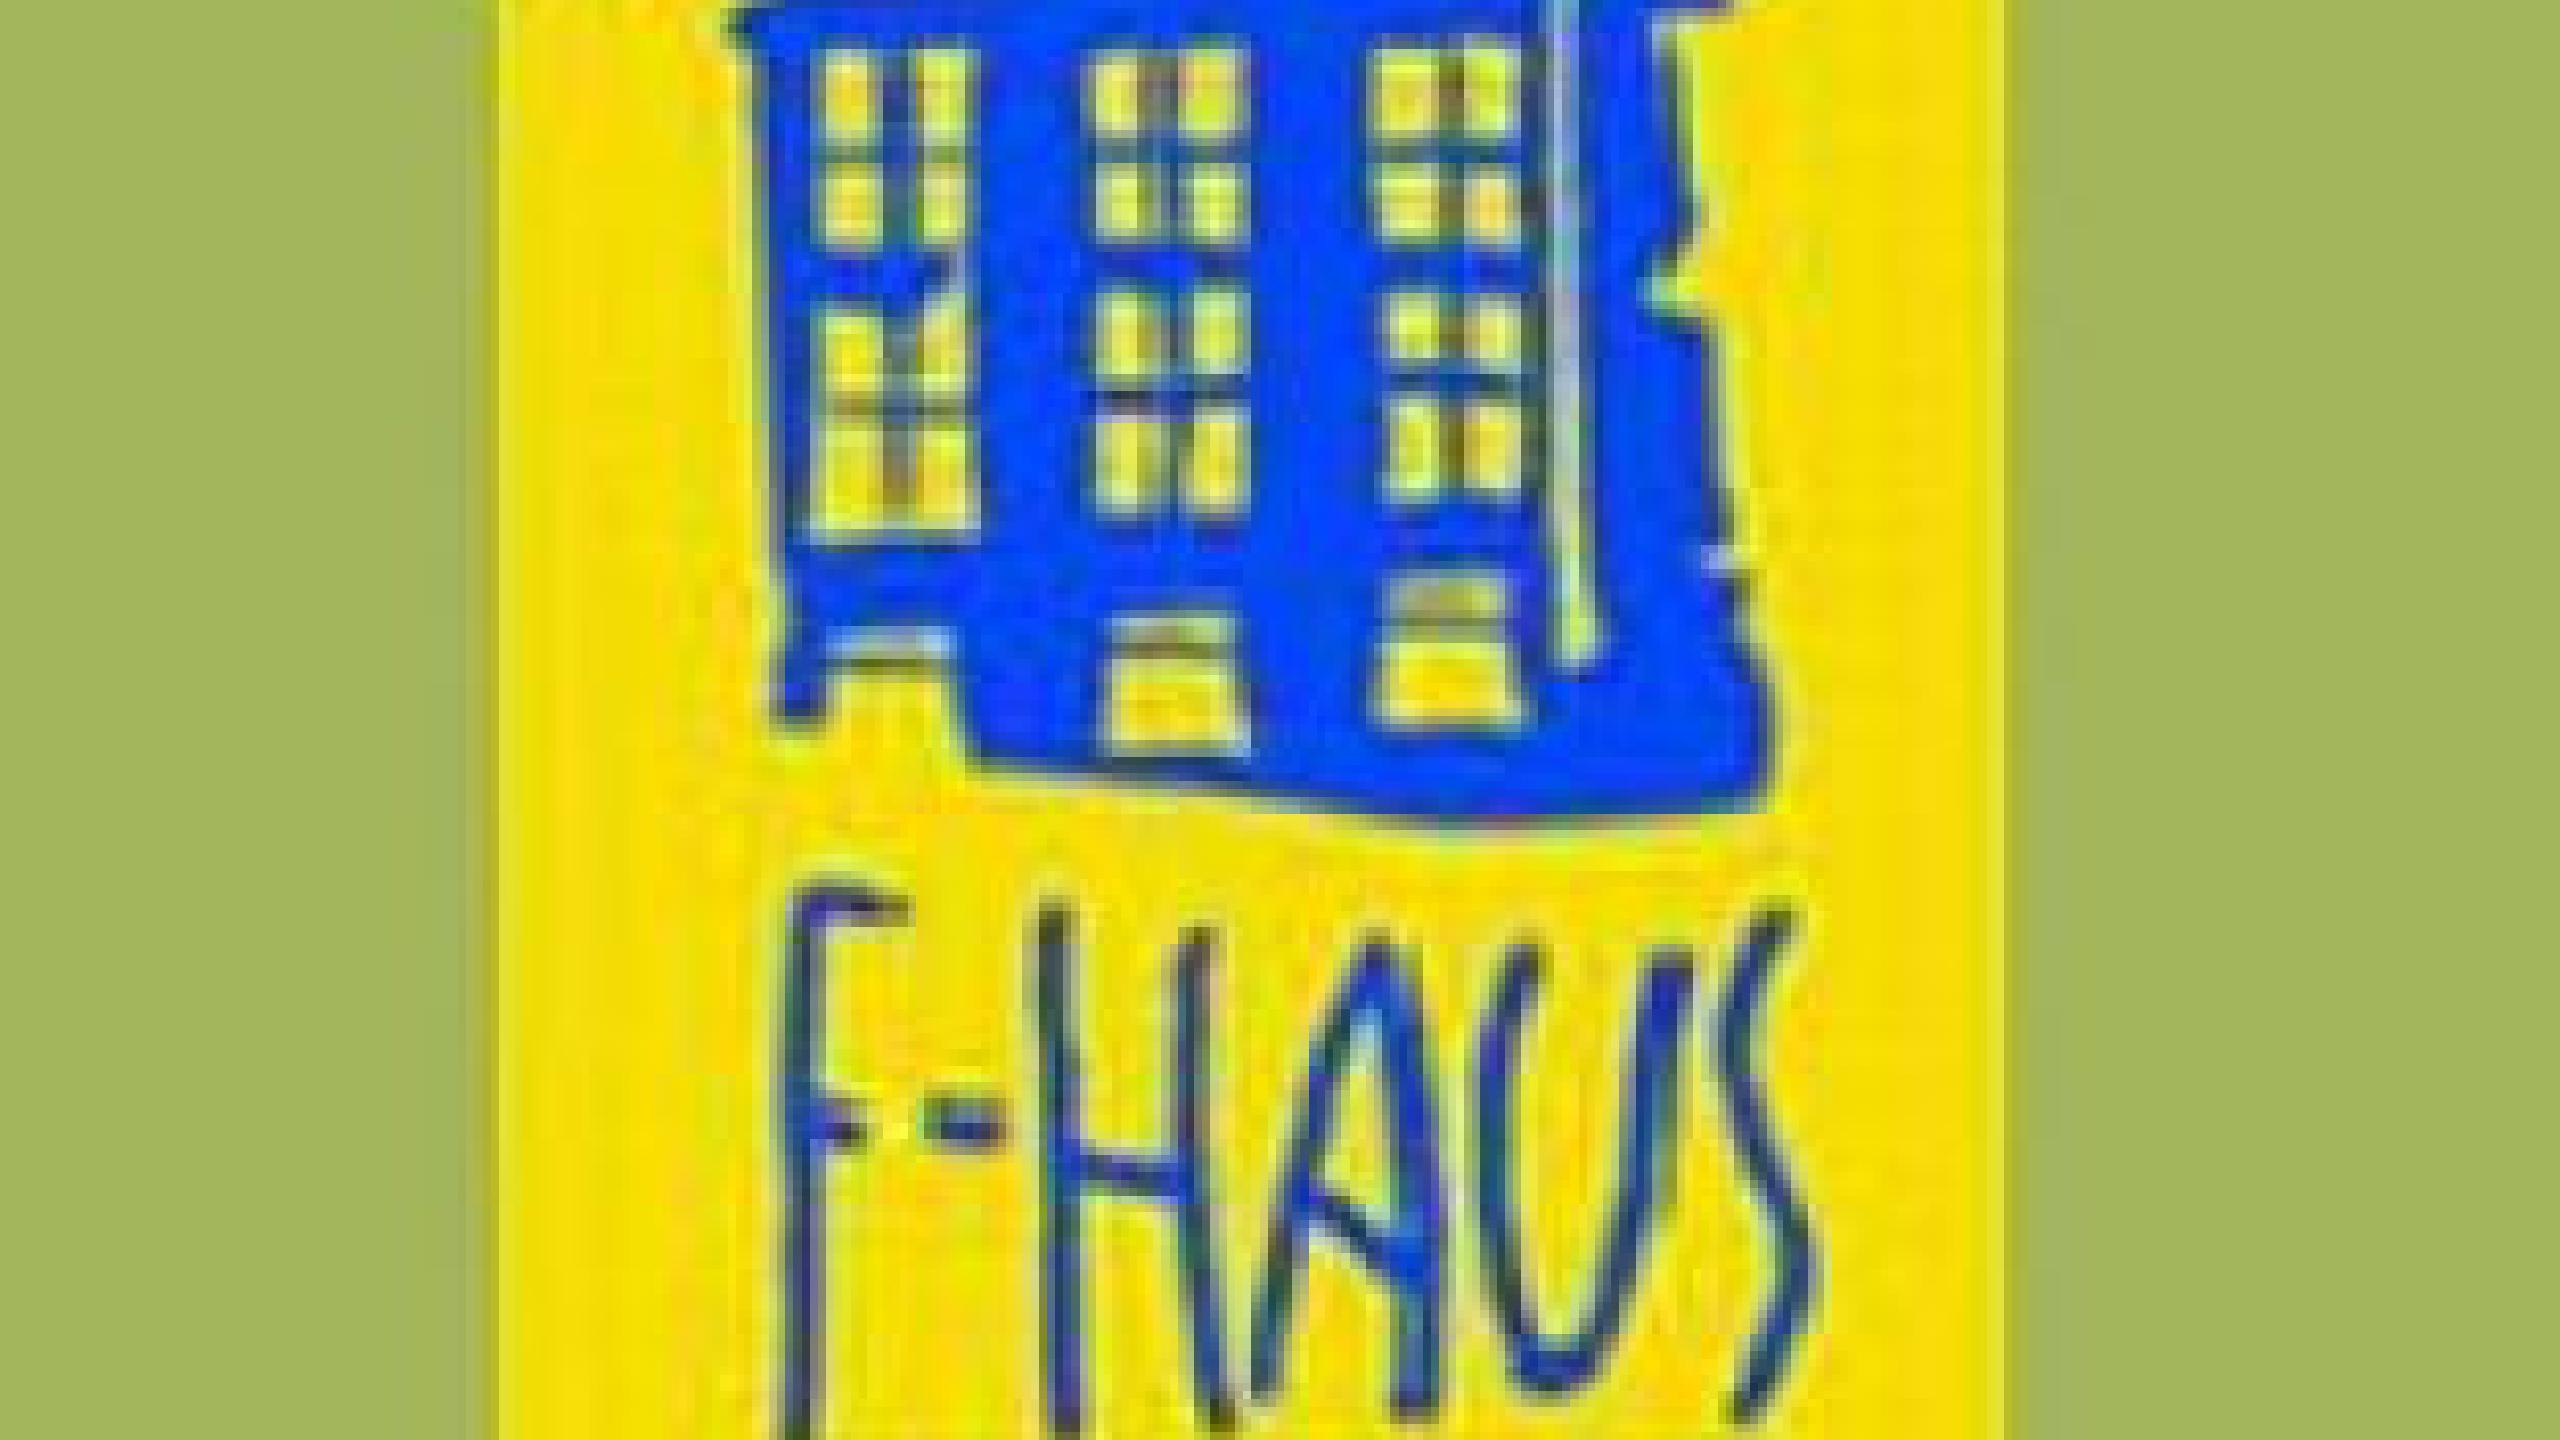 F Haus Jena Tickets And Concerts 2017 2018 Wegow